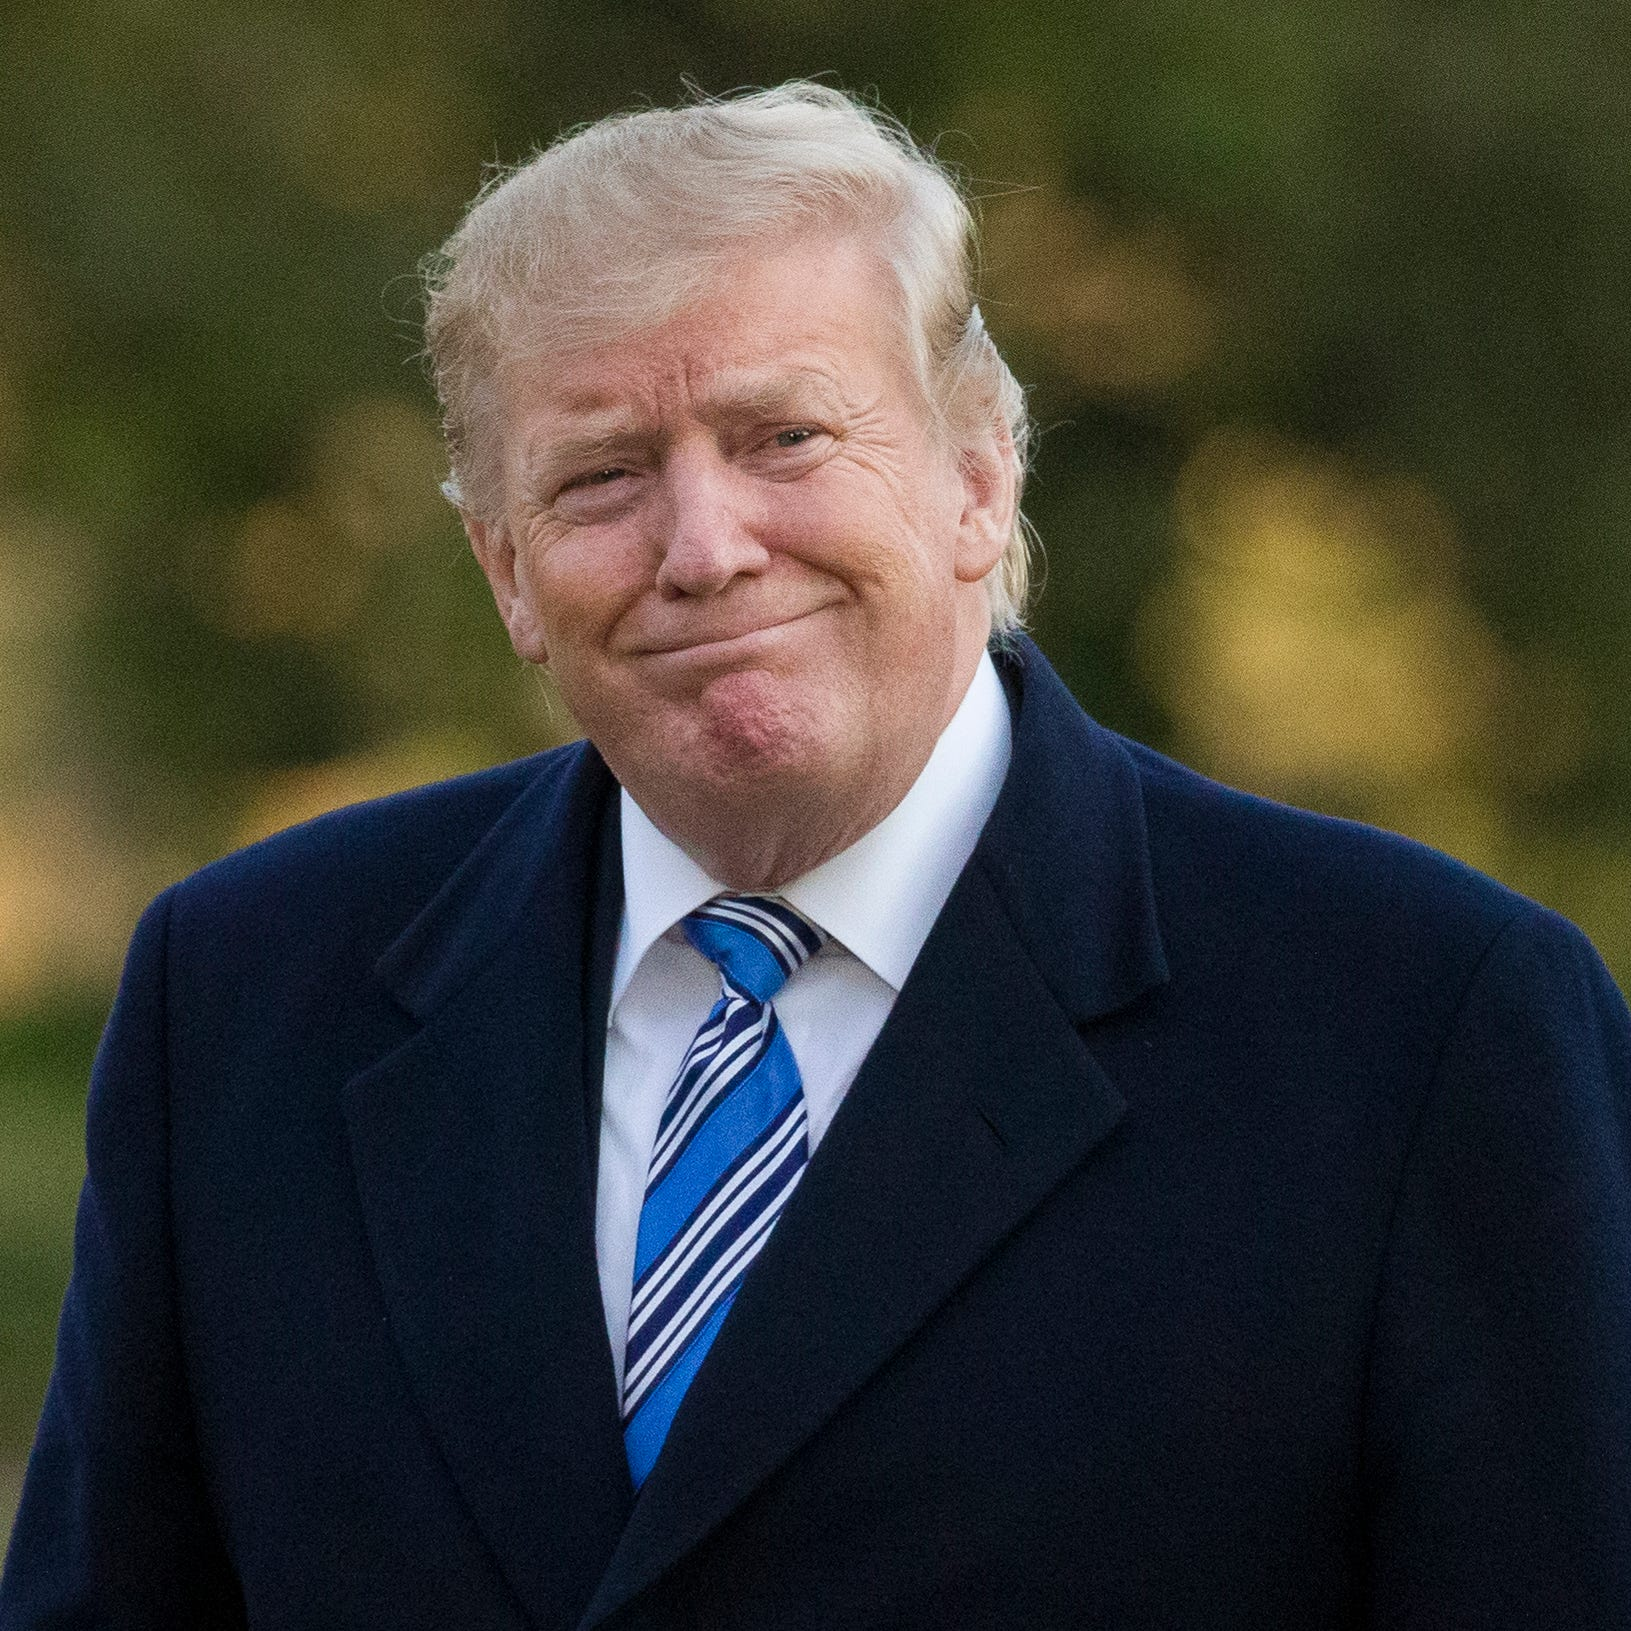 President Donald Trump smiles as he walks on the South Lawn after stepping off Marine One at the White House, March 10, 2019, in Washington.